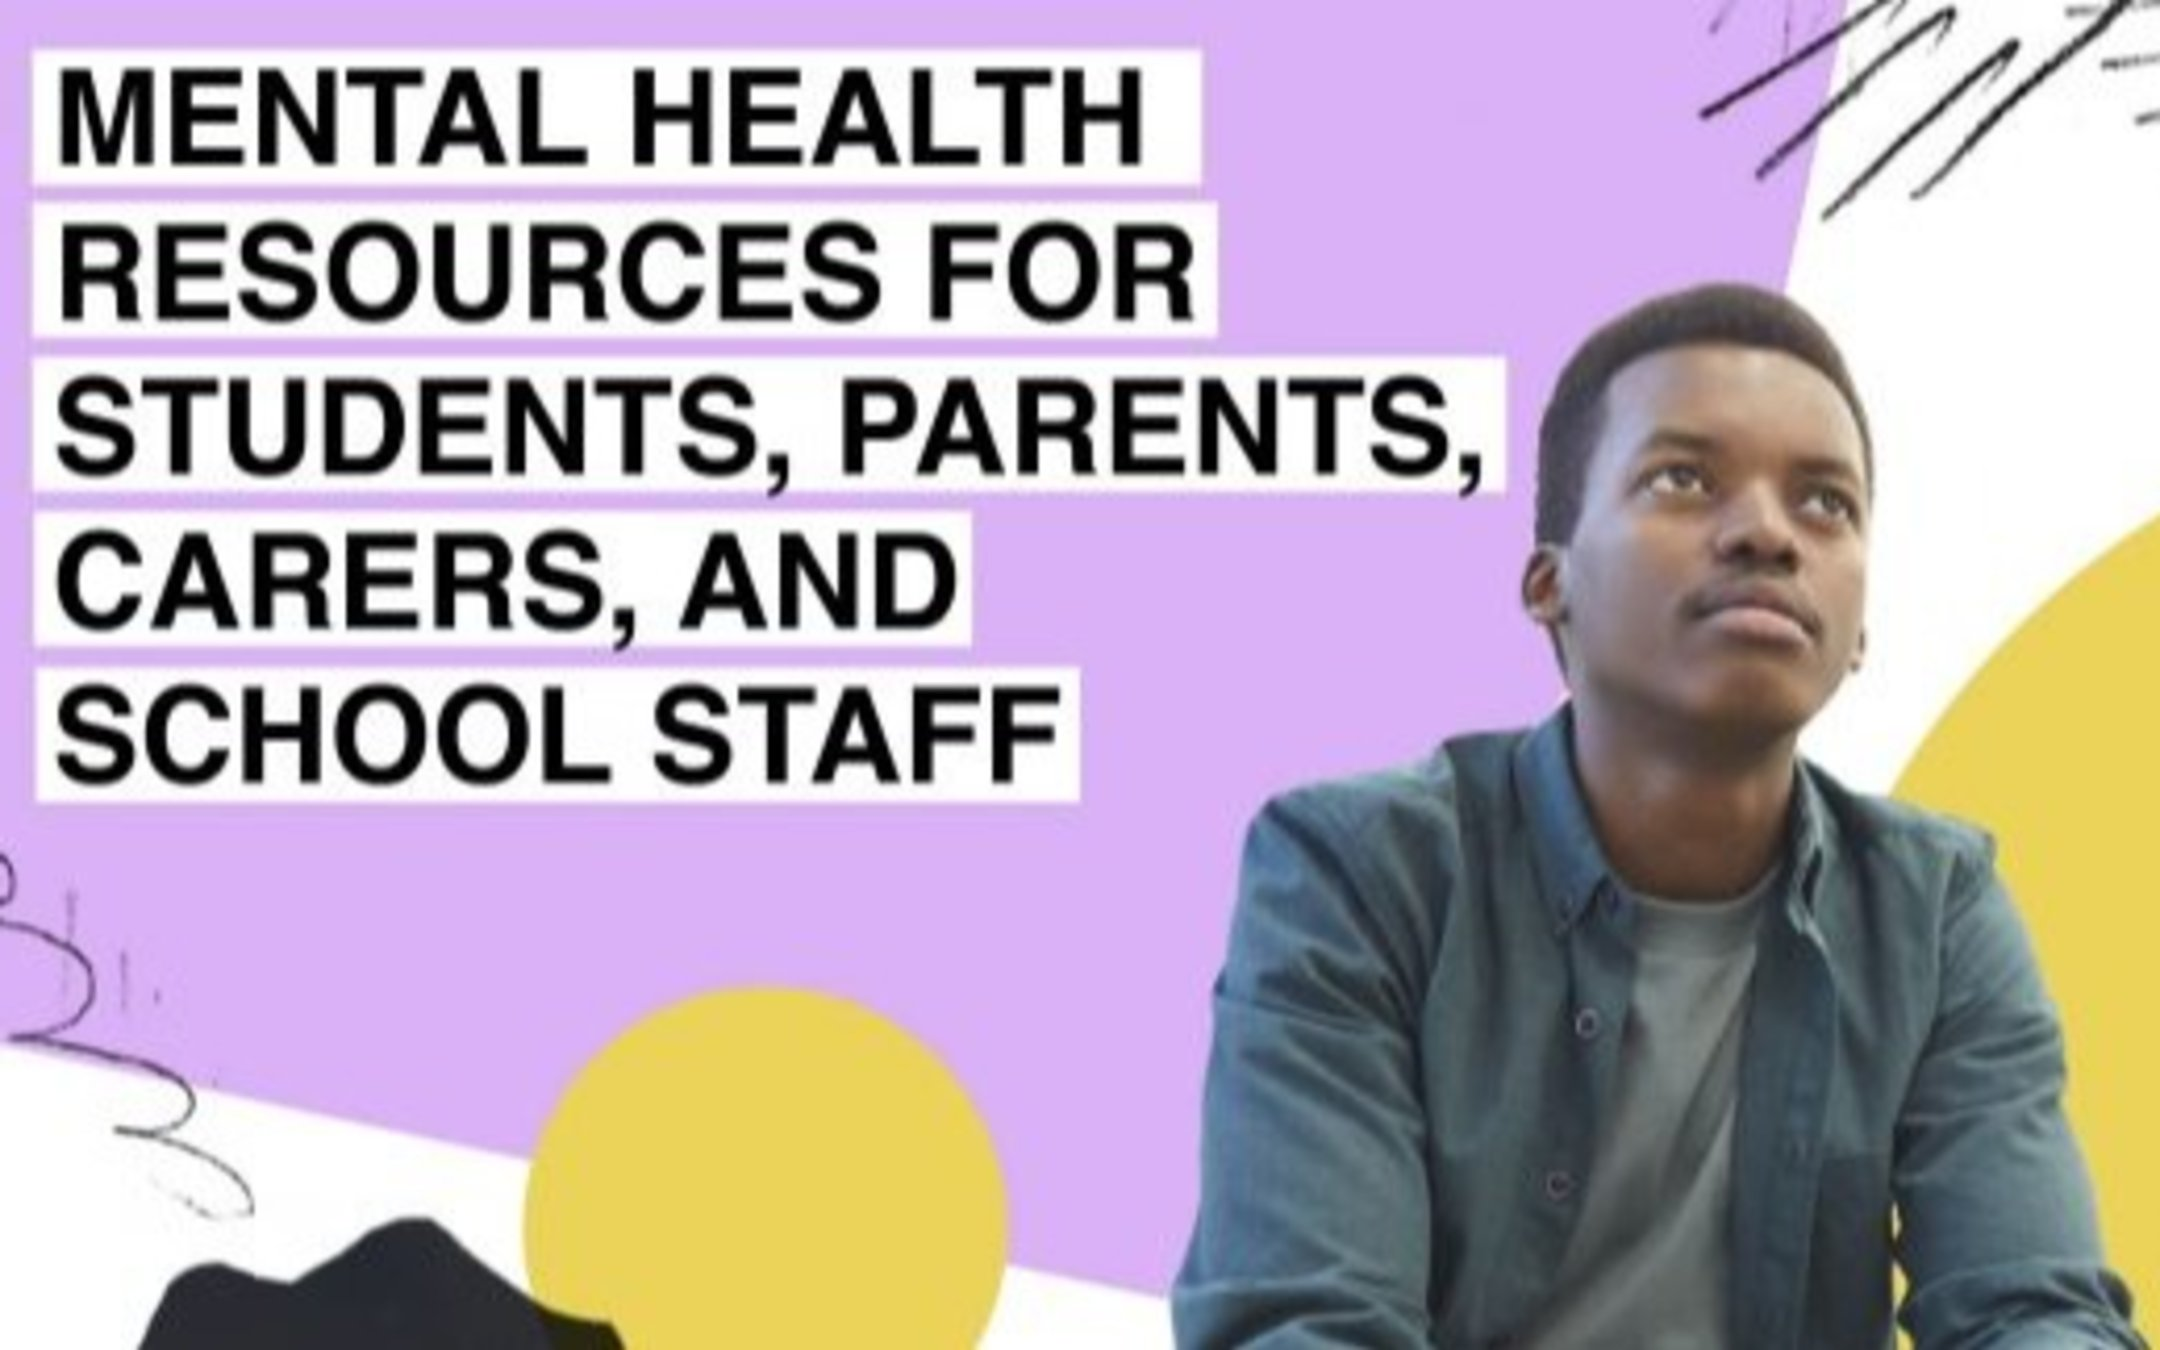 Image of man under 'mental health resources for students, parents, carers and school staff' title